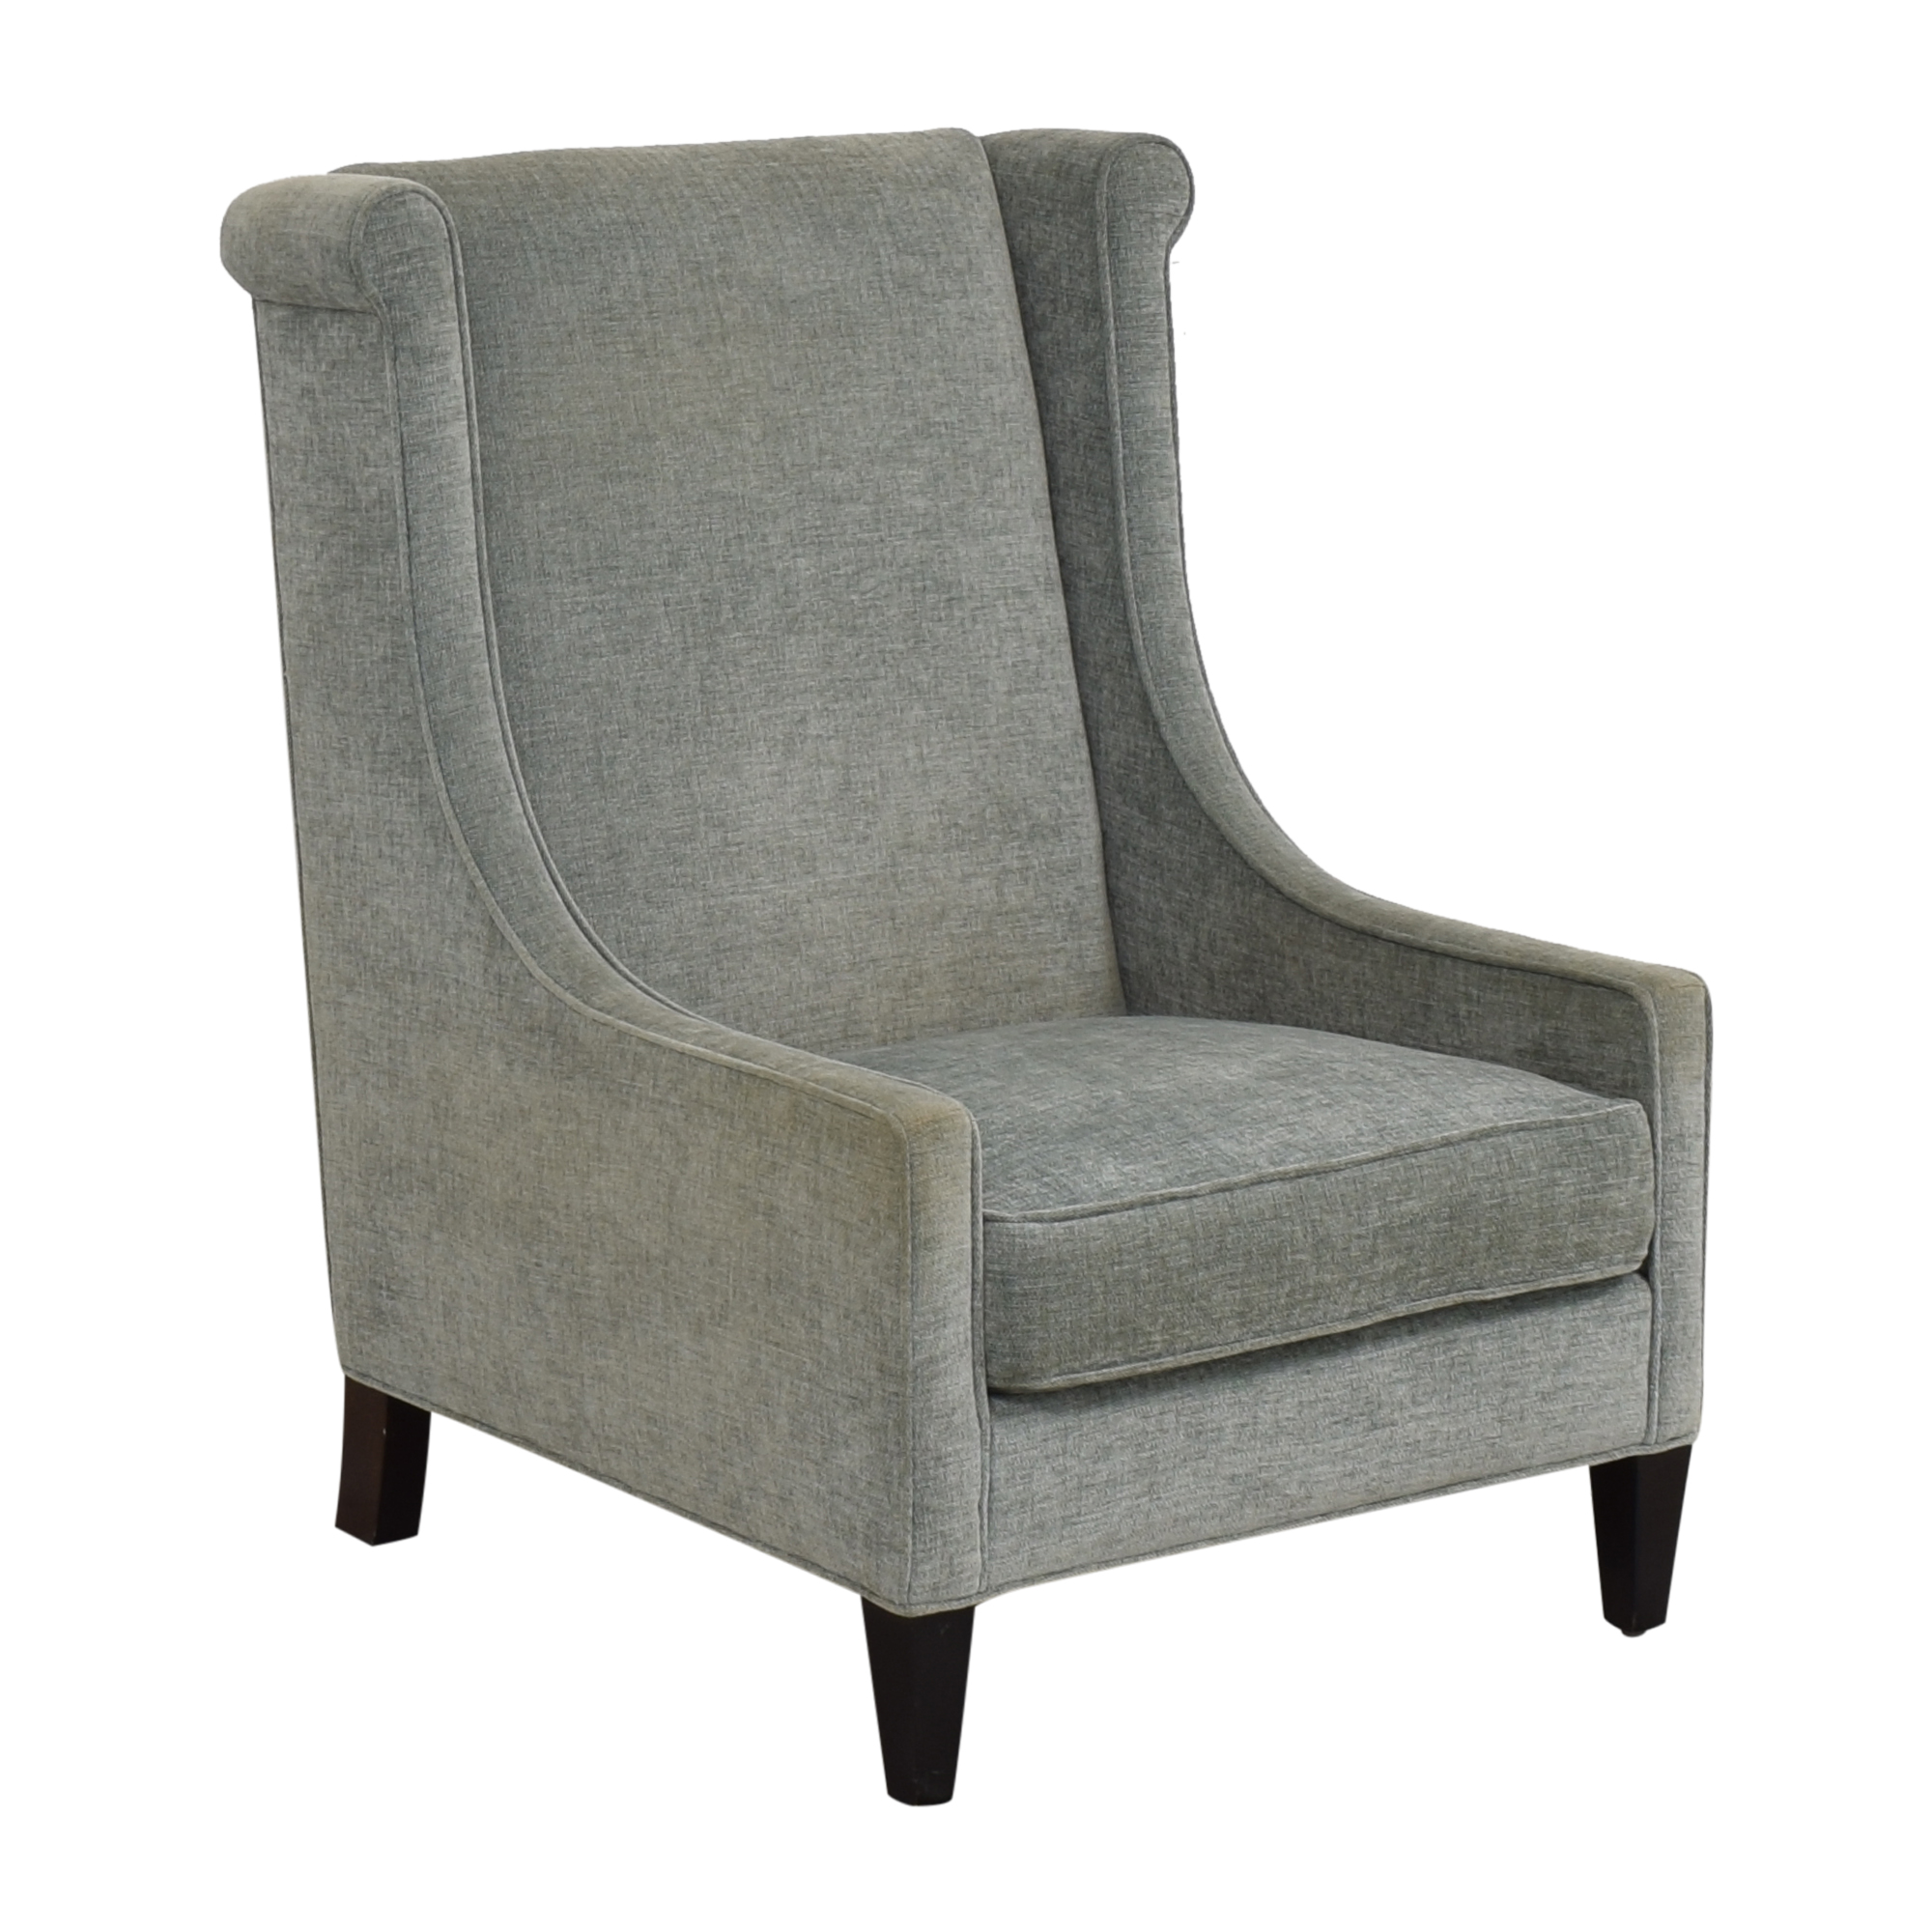 Custom Upholstered Accent Chair